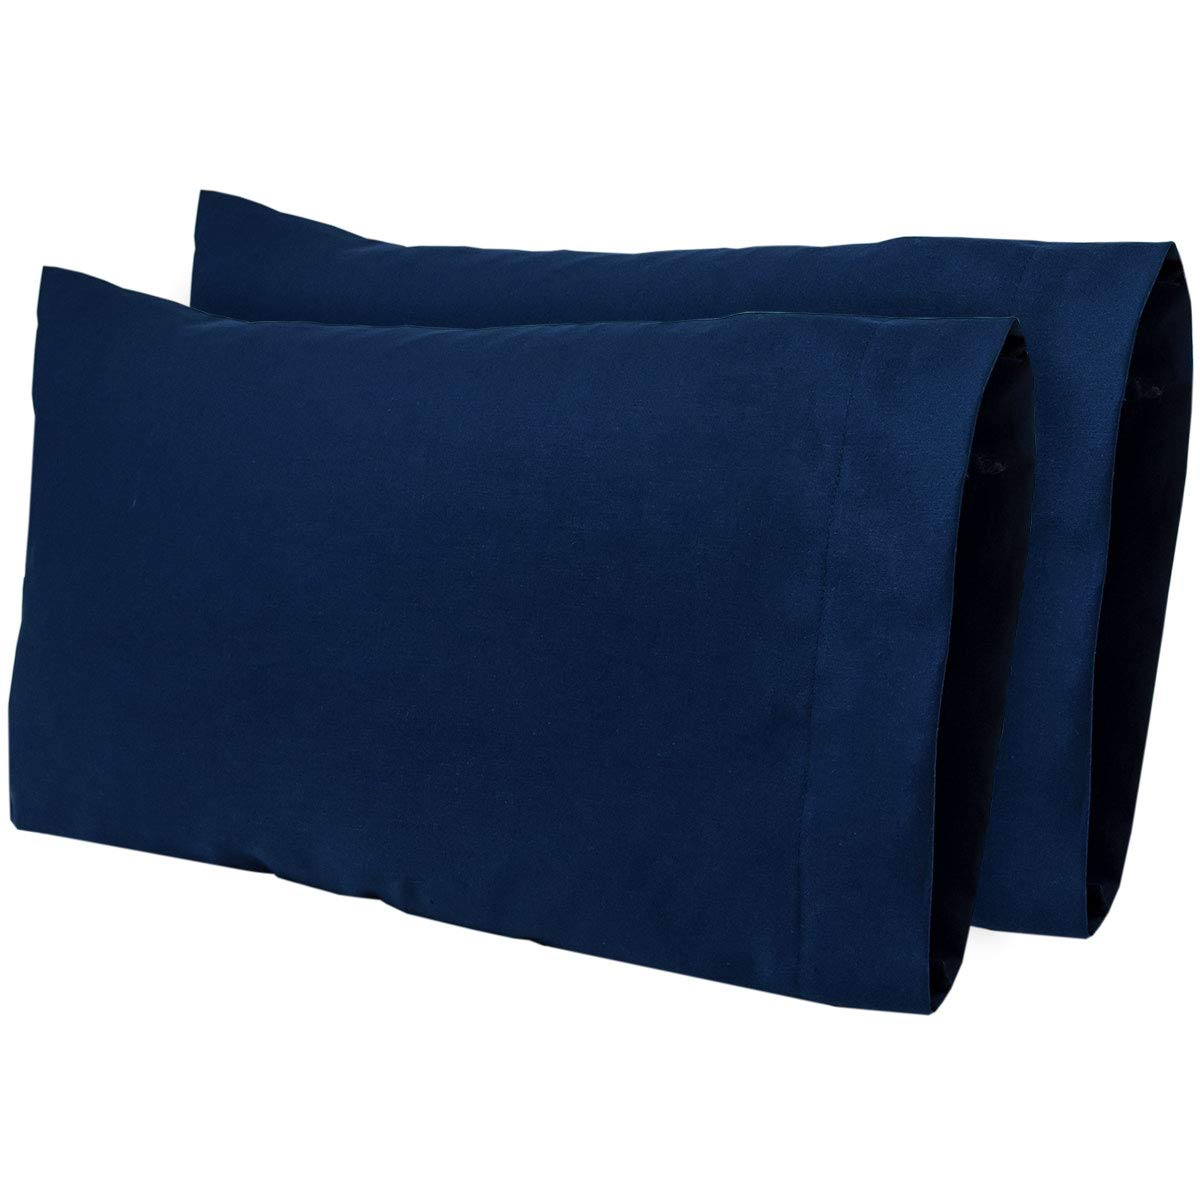 300 Thread Count 100/% Kona Cotton Travel Pillowcase Fits MyPillow Go Anywhere Pillow Toddler Size Pillowcase Color:Storm 2 Pack 12x18 Made in The USA! AB Lifestyles Travel Size